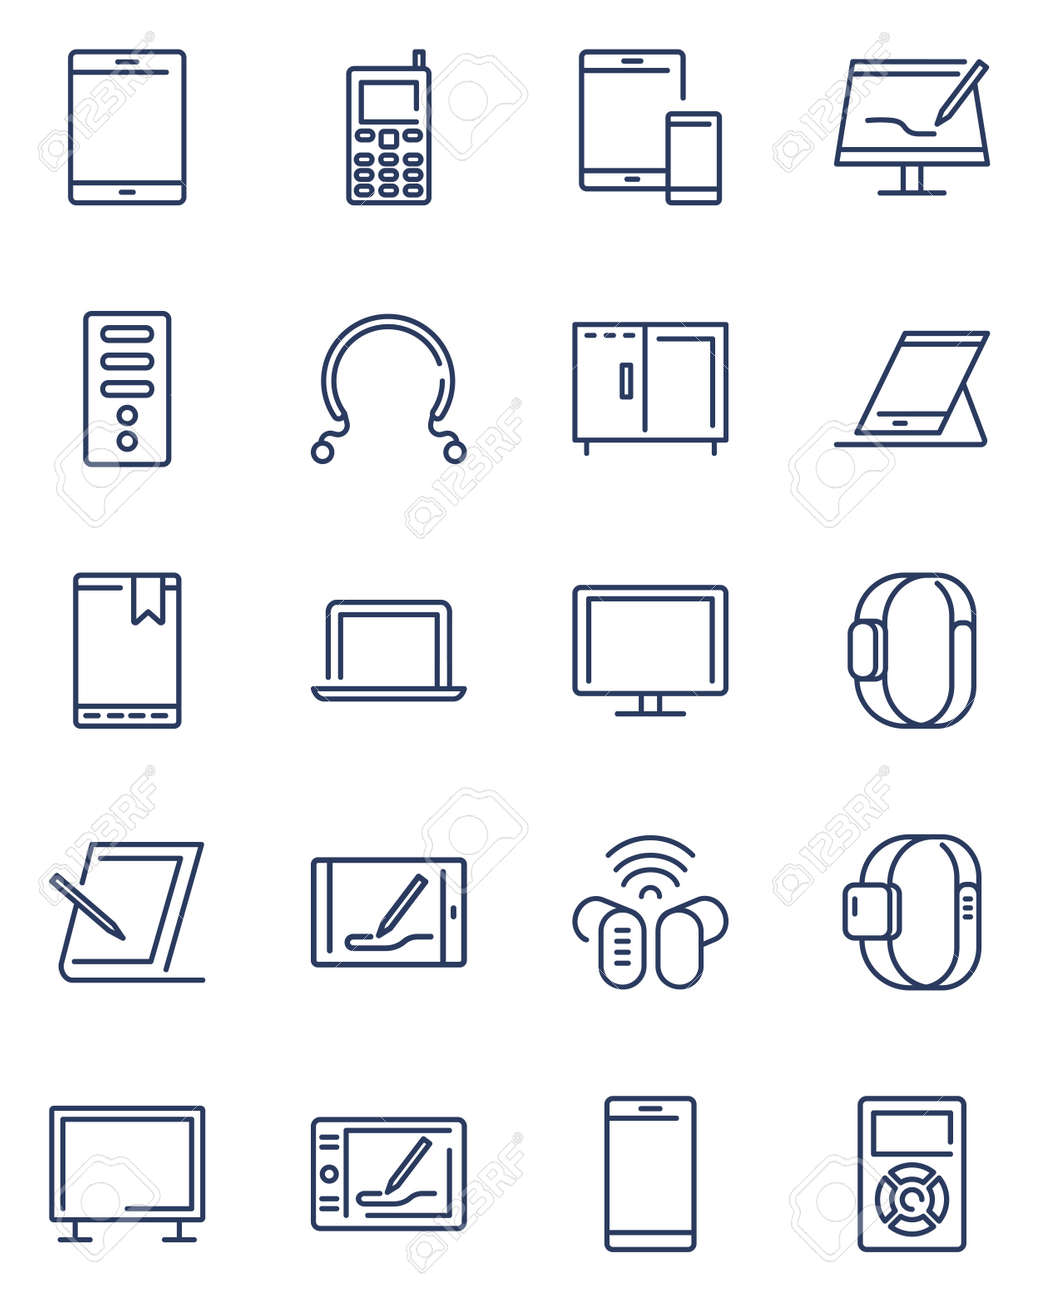 Digital devices line icon set. Computer, server, laptop, tablet, mobile phone and other electronic equipment. Vector icon collection for smart technology, multimedia gadgets topics - 148711409